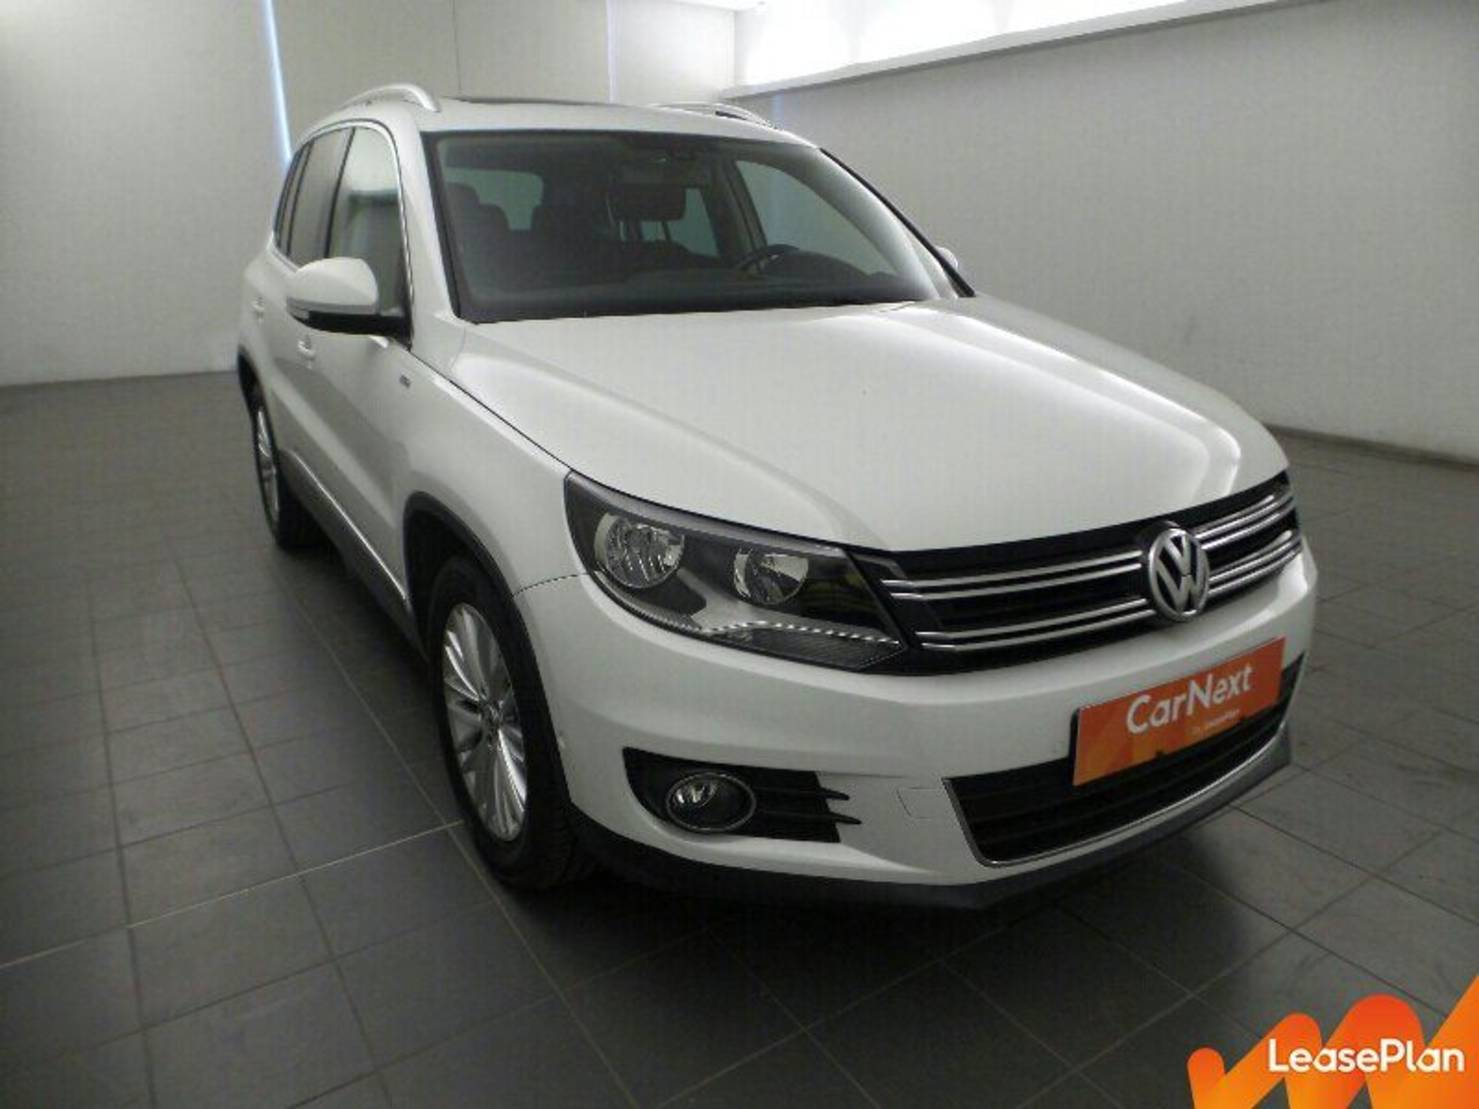 Volkswagen Tiguan 2.0 TDI 110 FAP BlueMotion Technology, Cup detail2